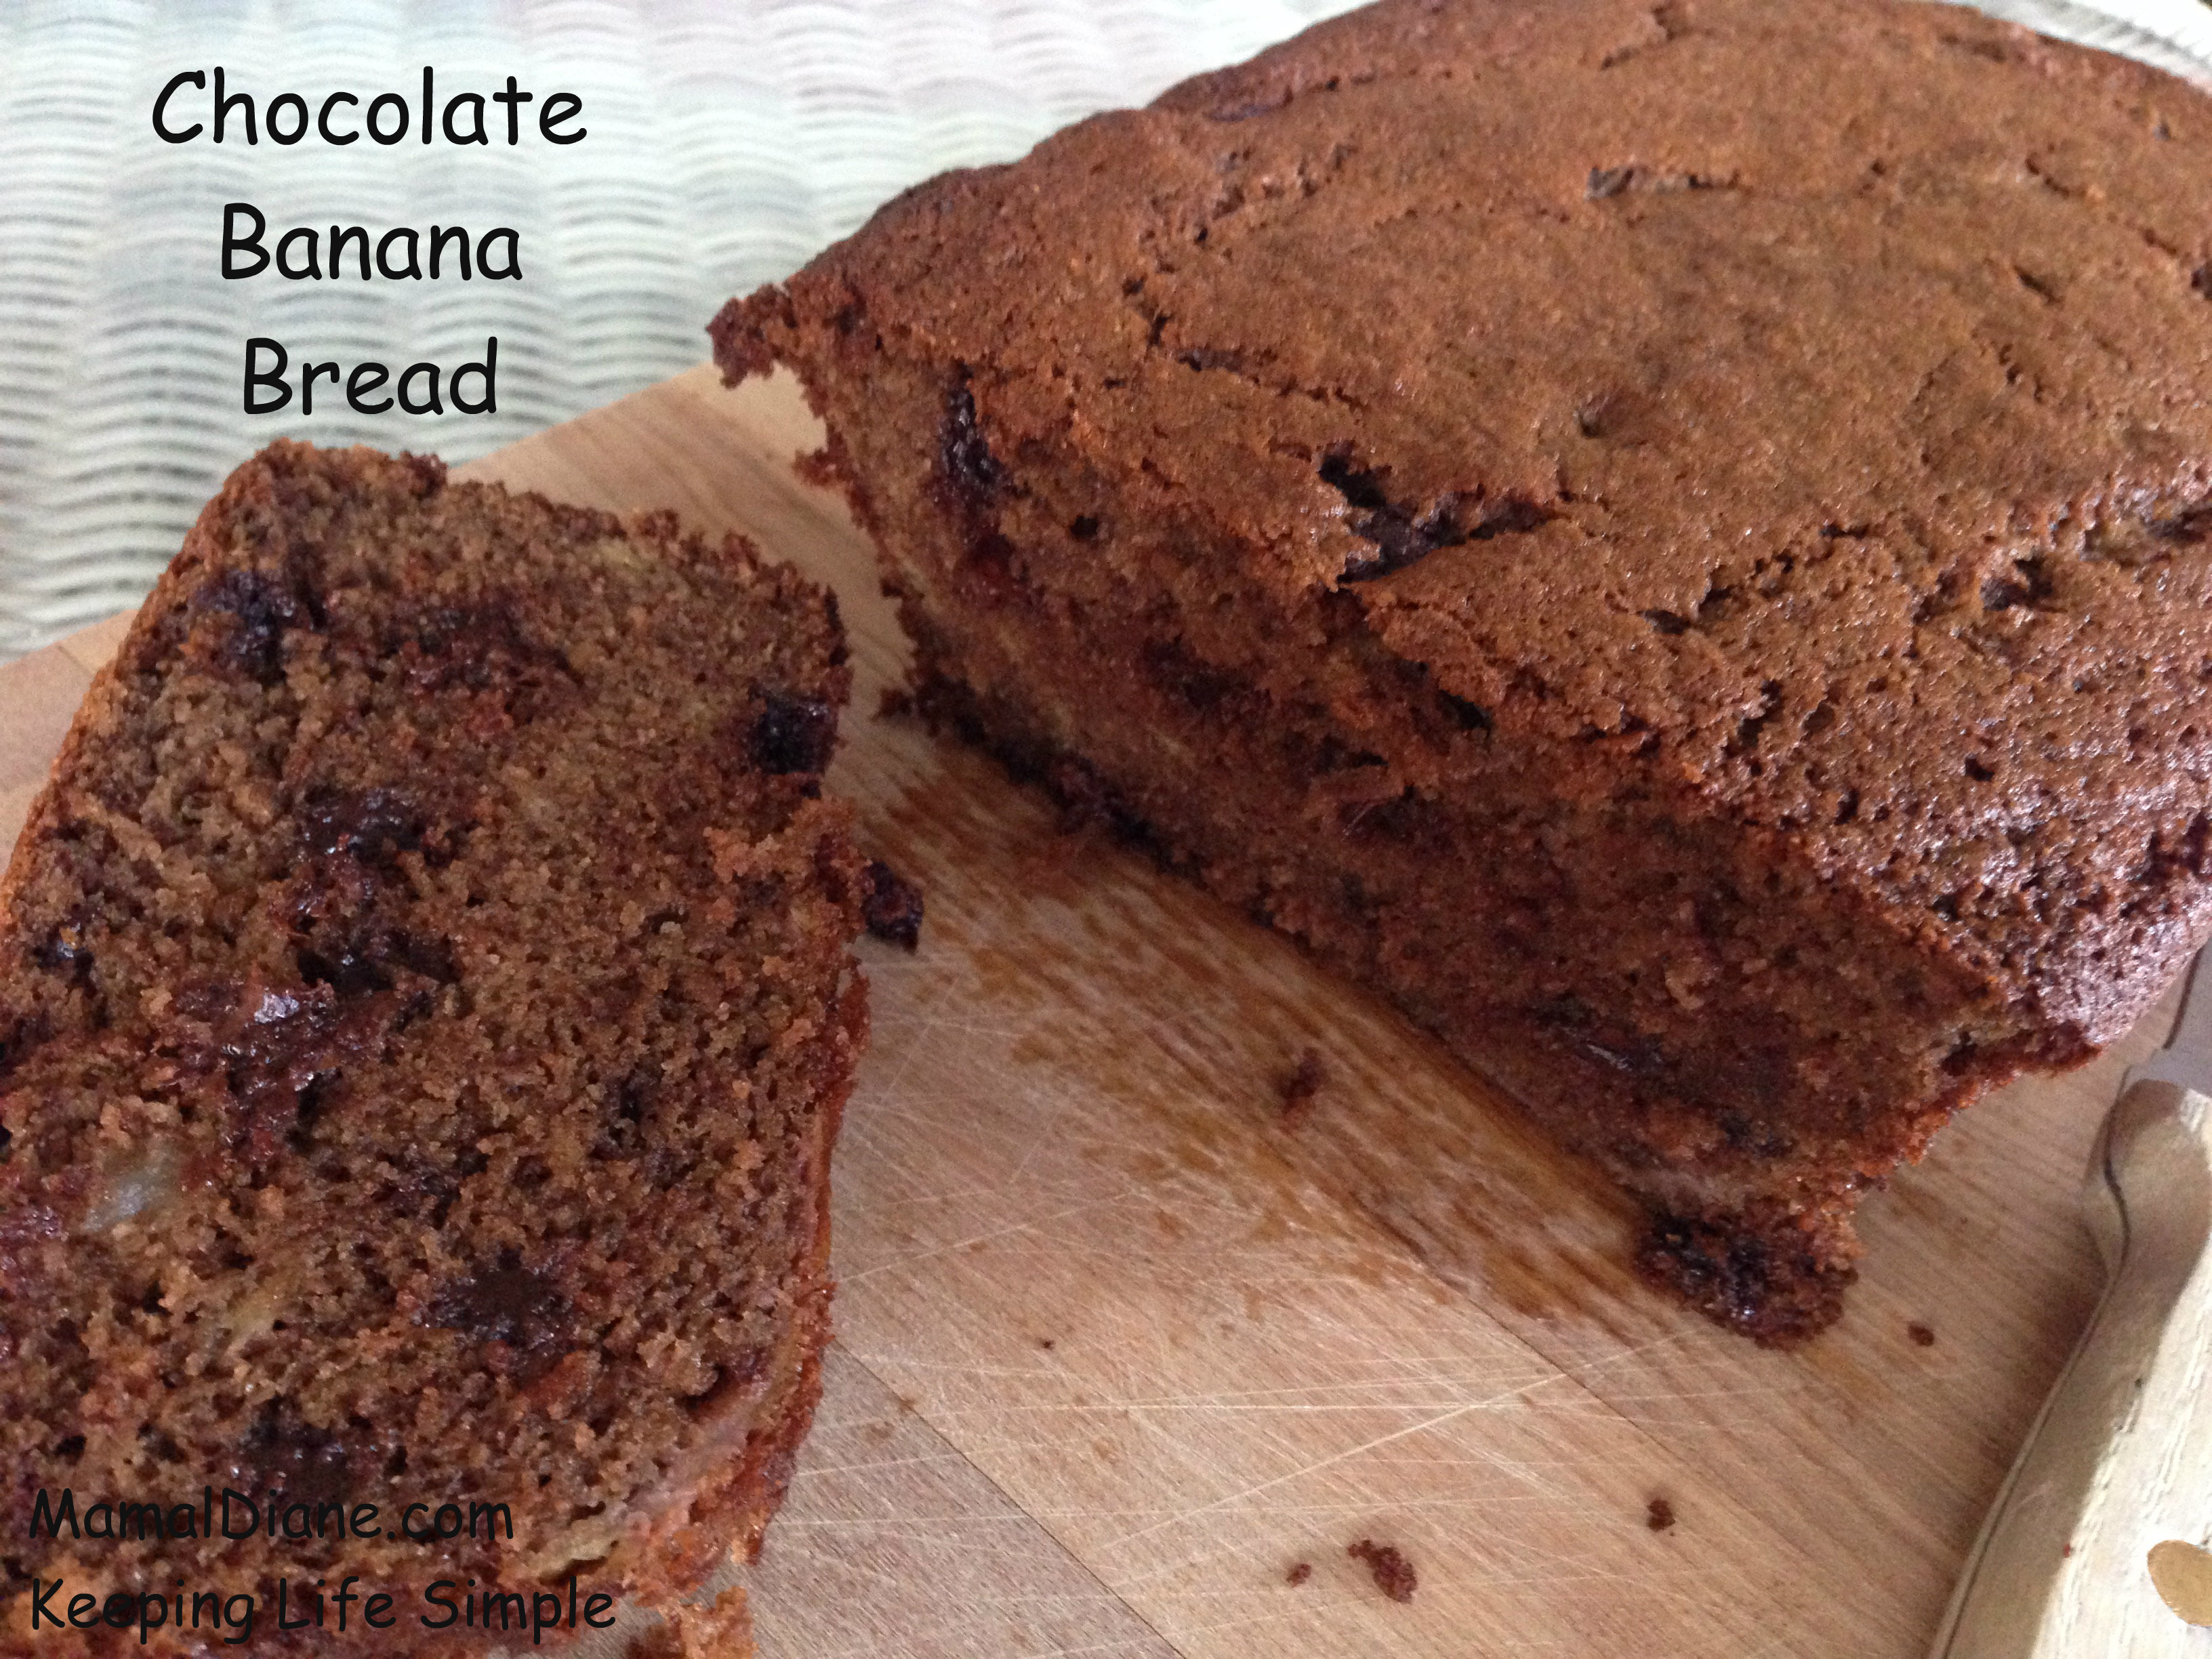 Chocolate Banana Bread with Carob Powder